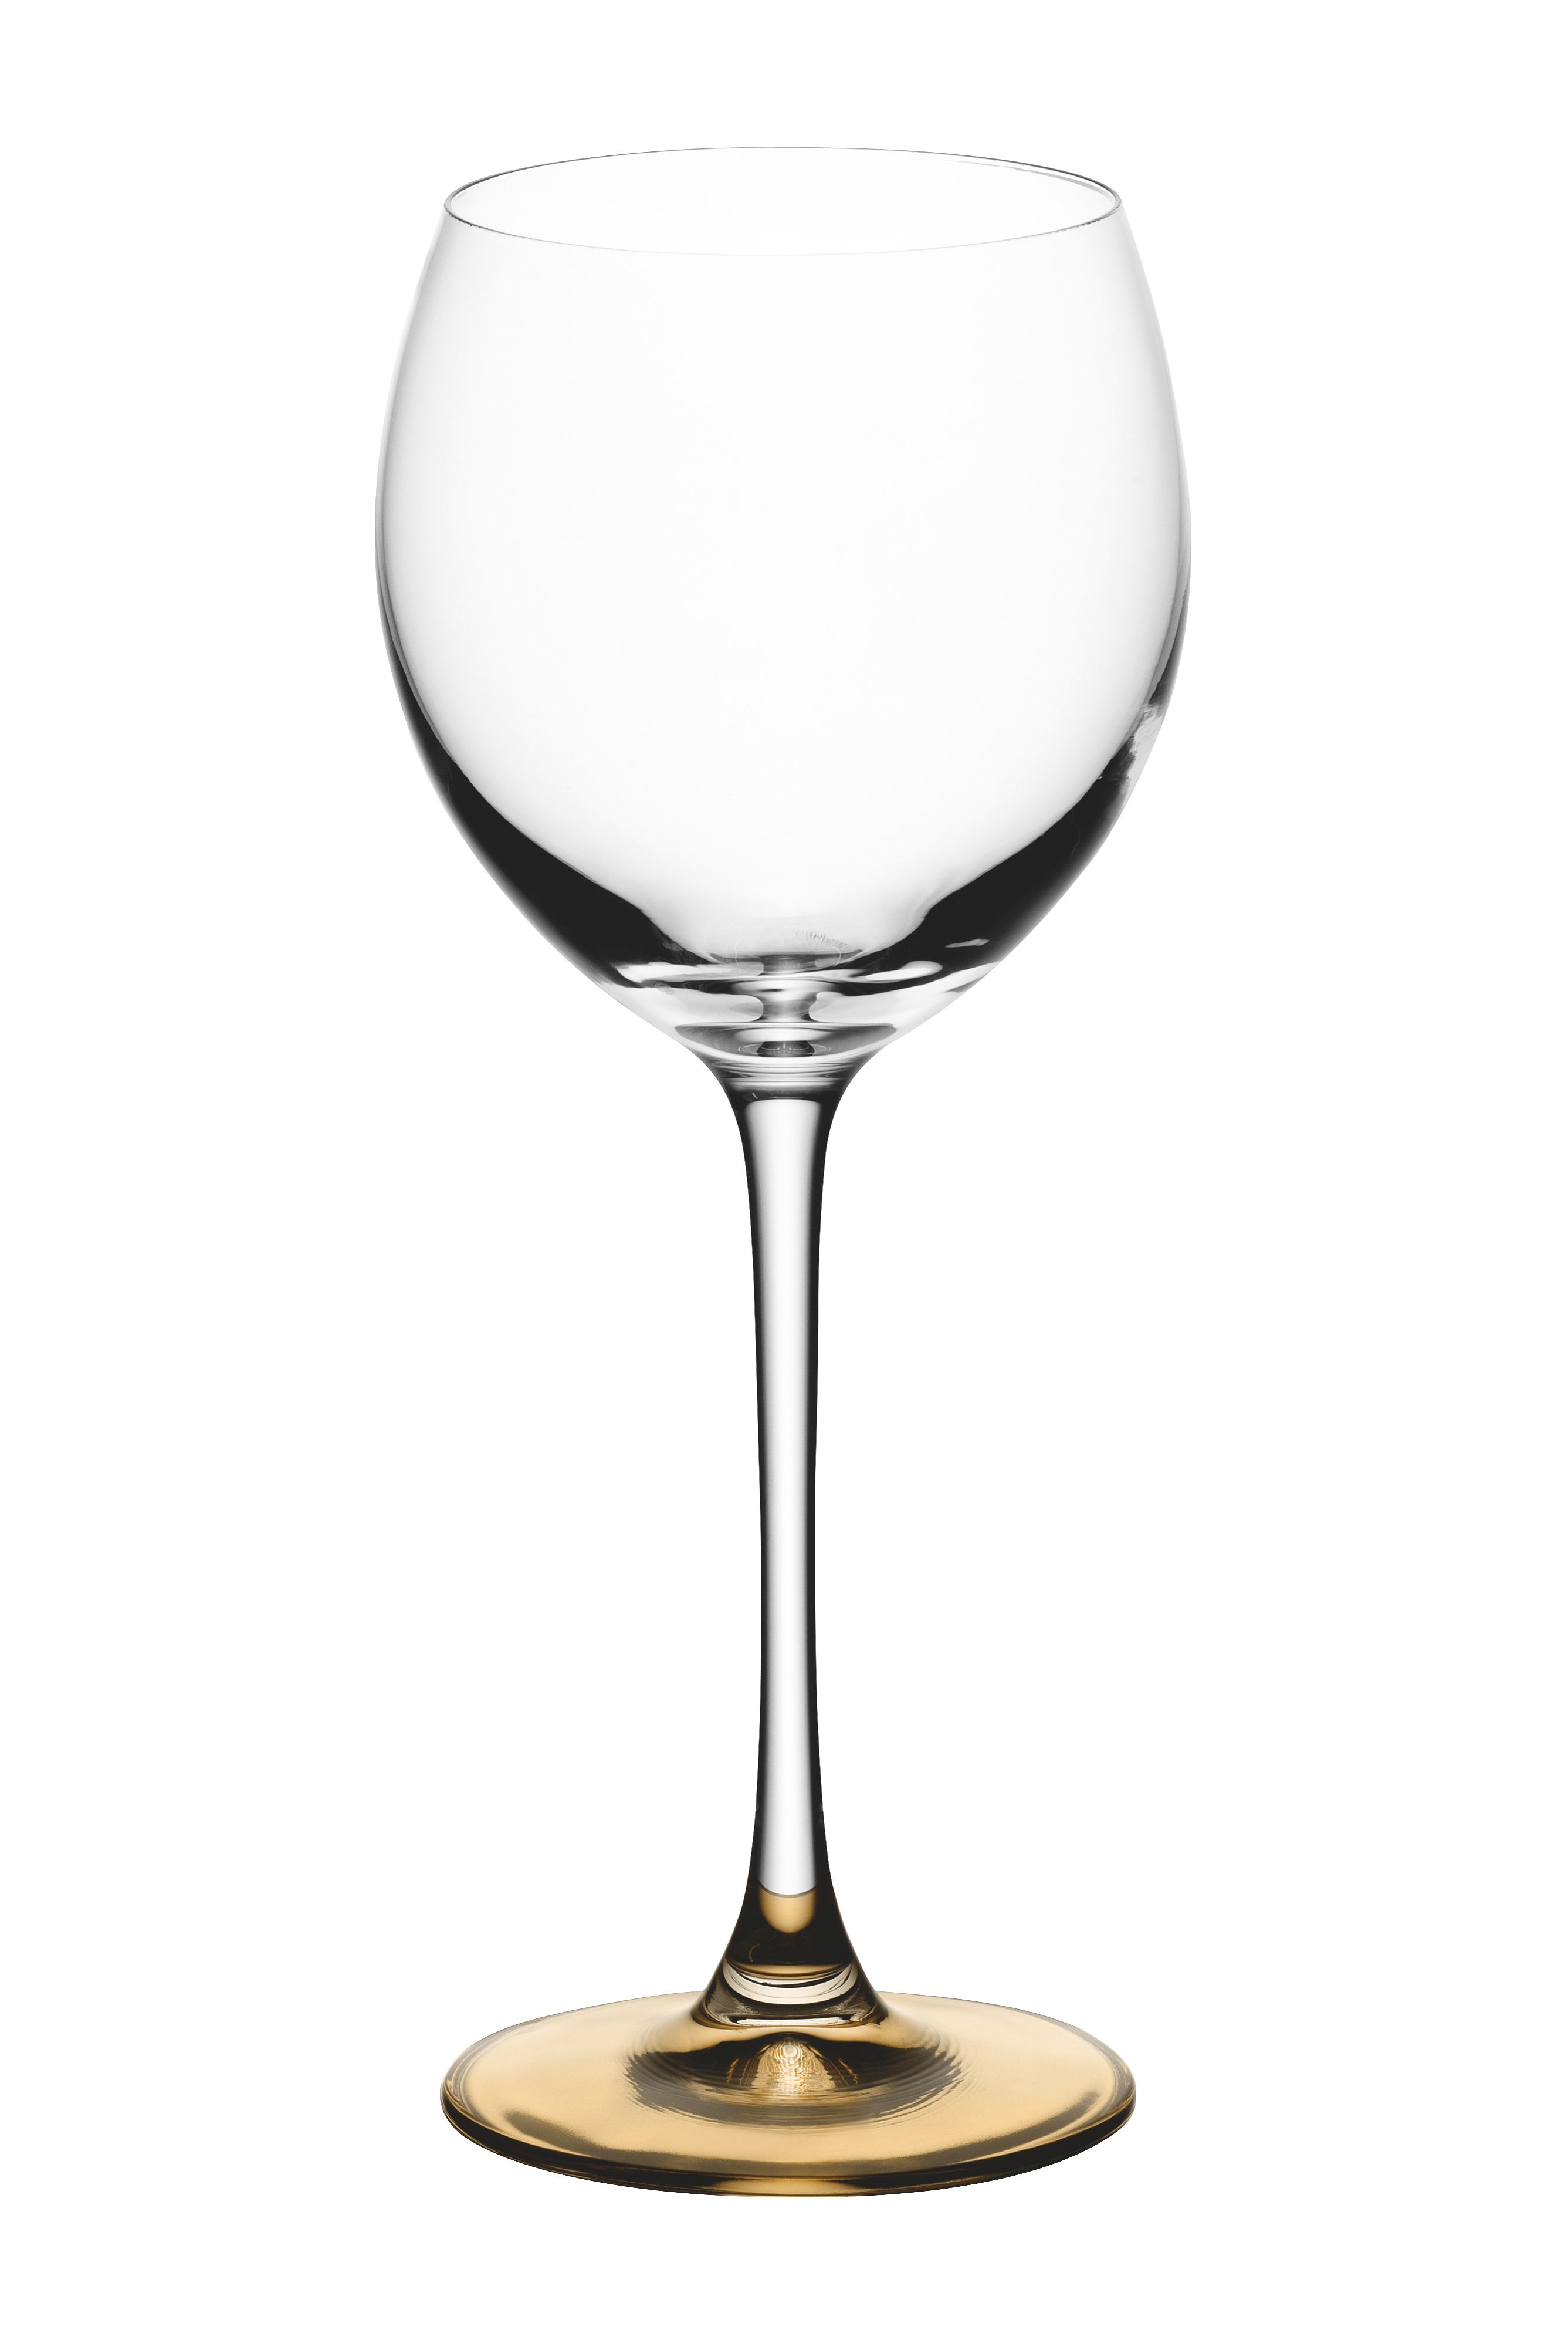 Coro gold wine glass, set of 4